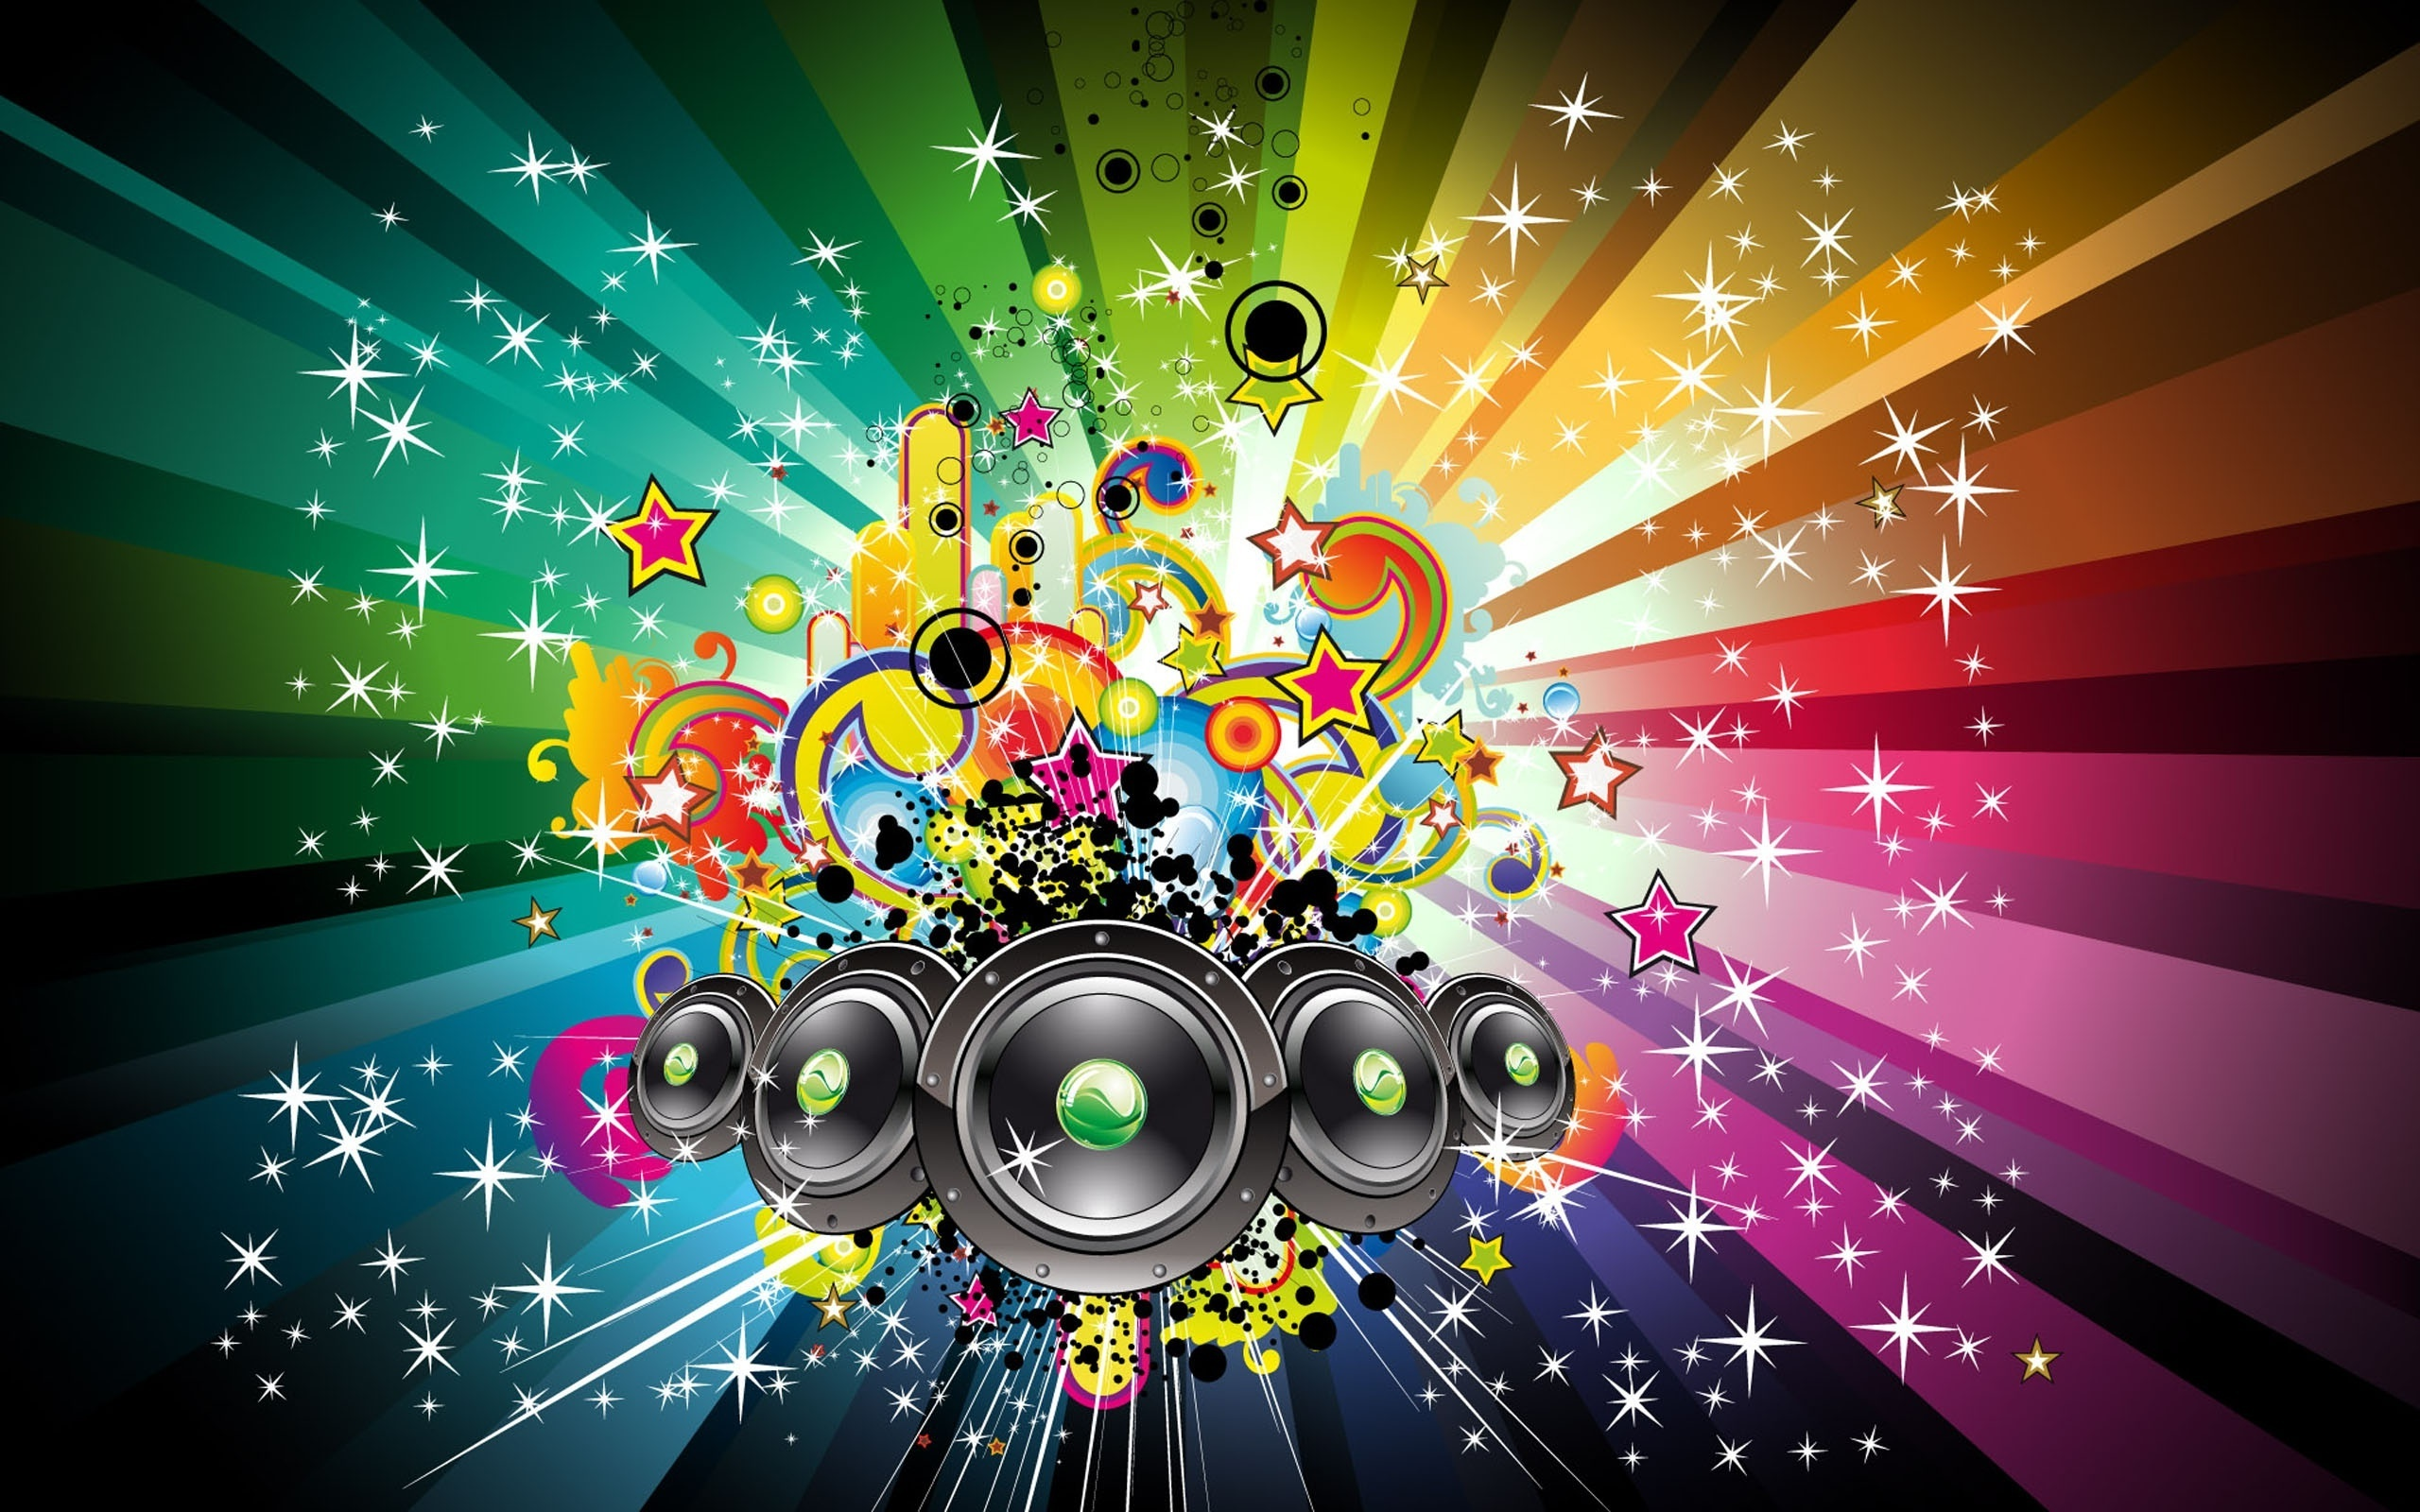 Colorful Music Images